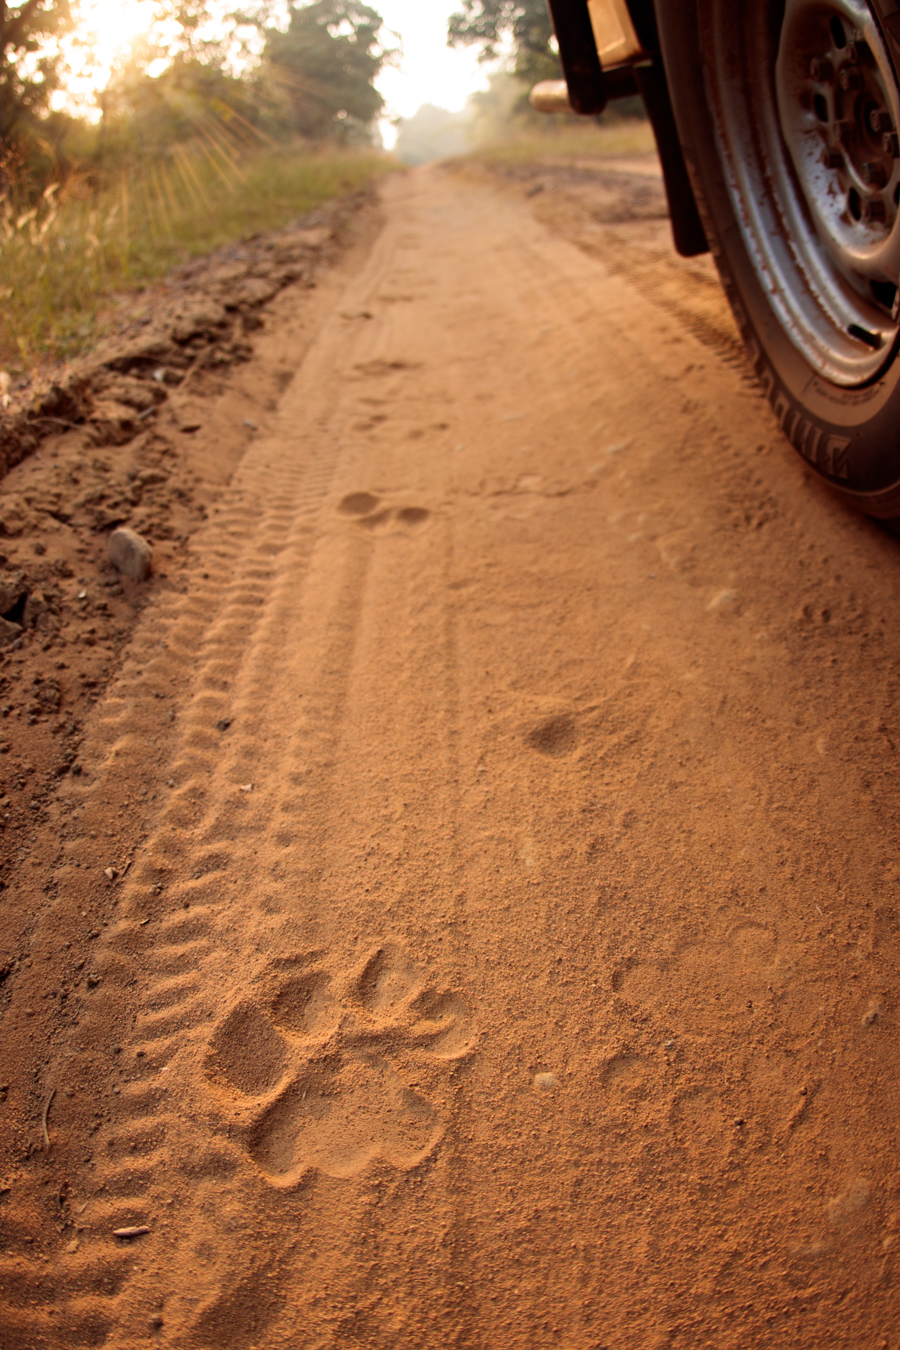 Some cats are very shy and often wait for the jeep to pass by and then reveal themselves…